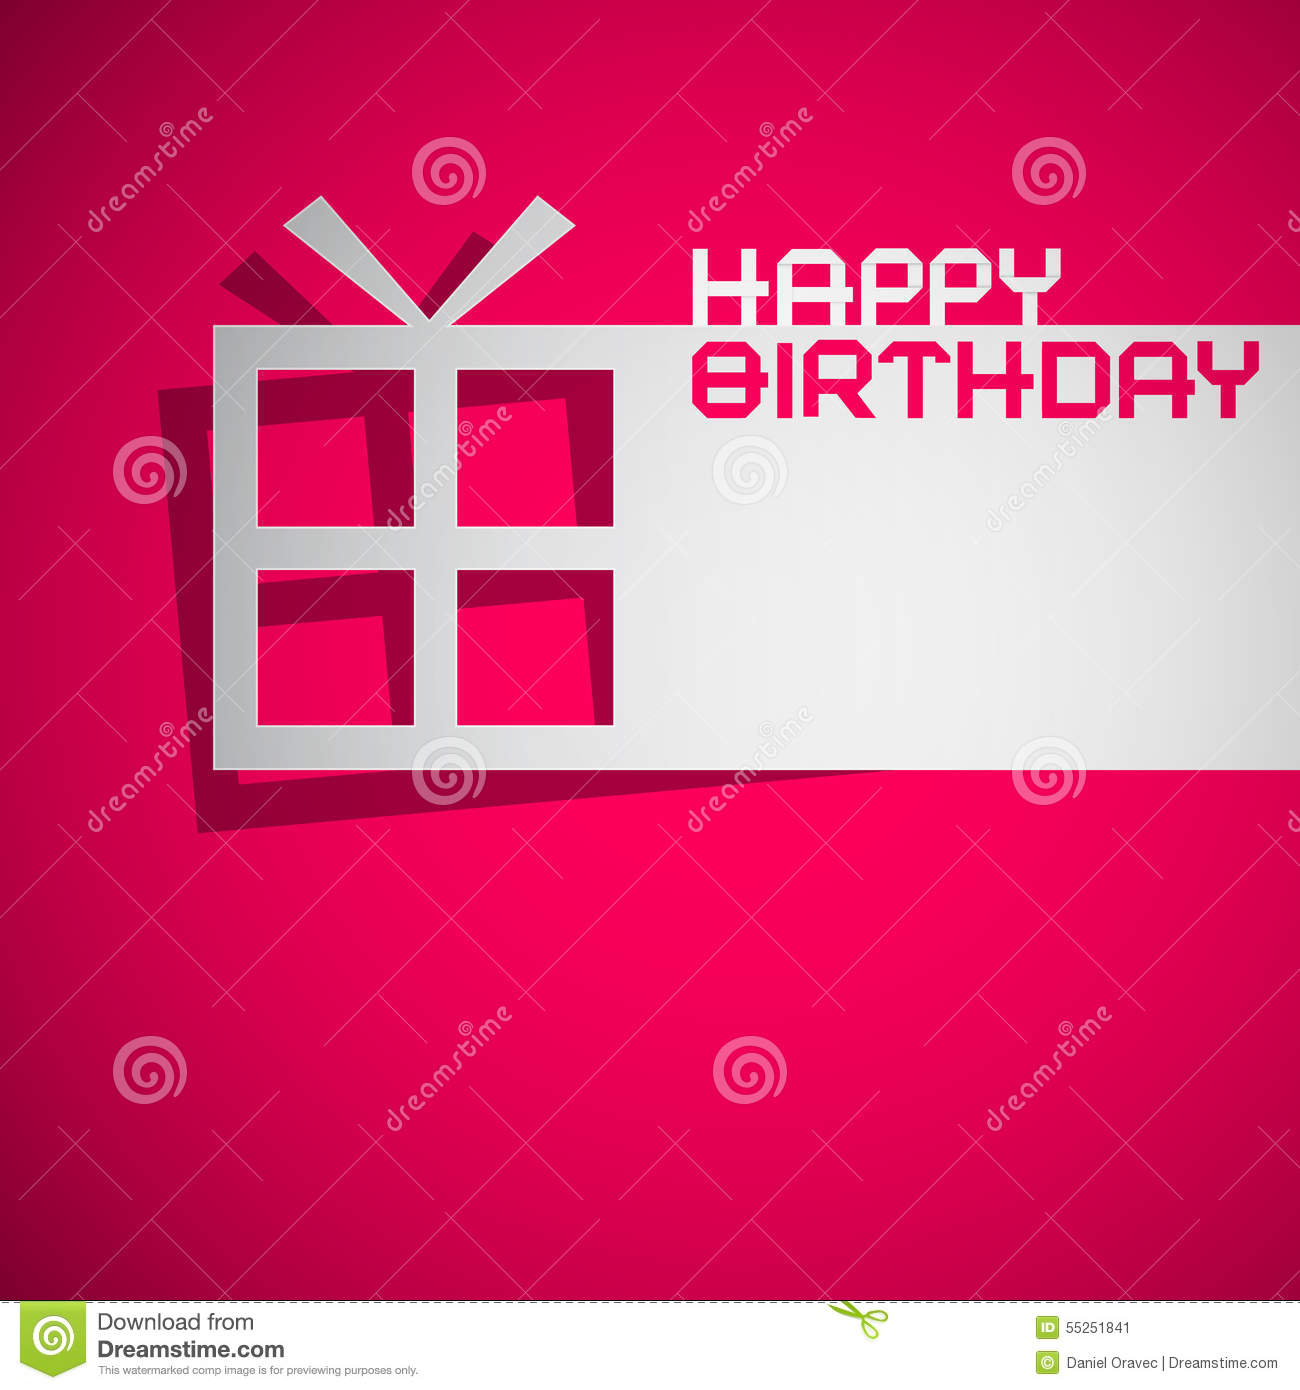 Happy Birthday Card With Paper Cut Gift Box